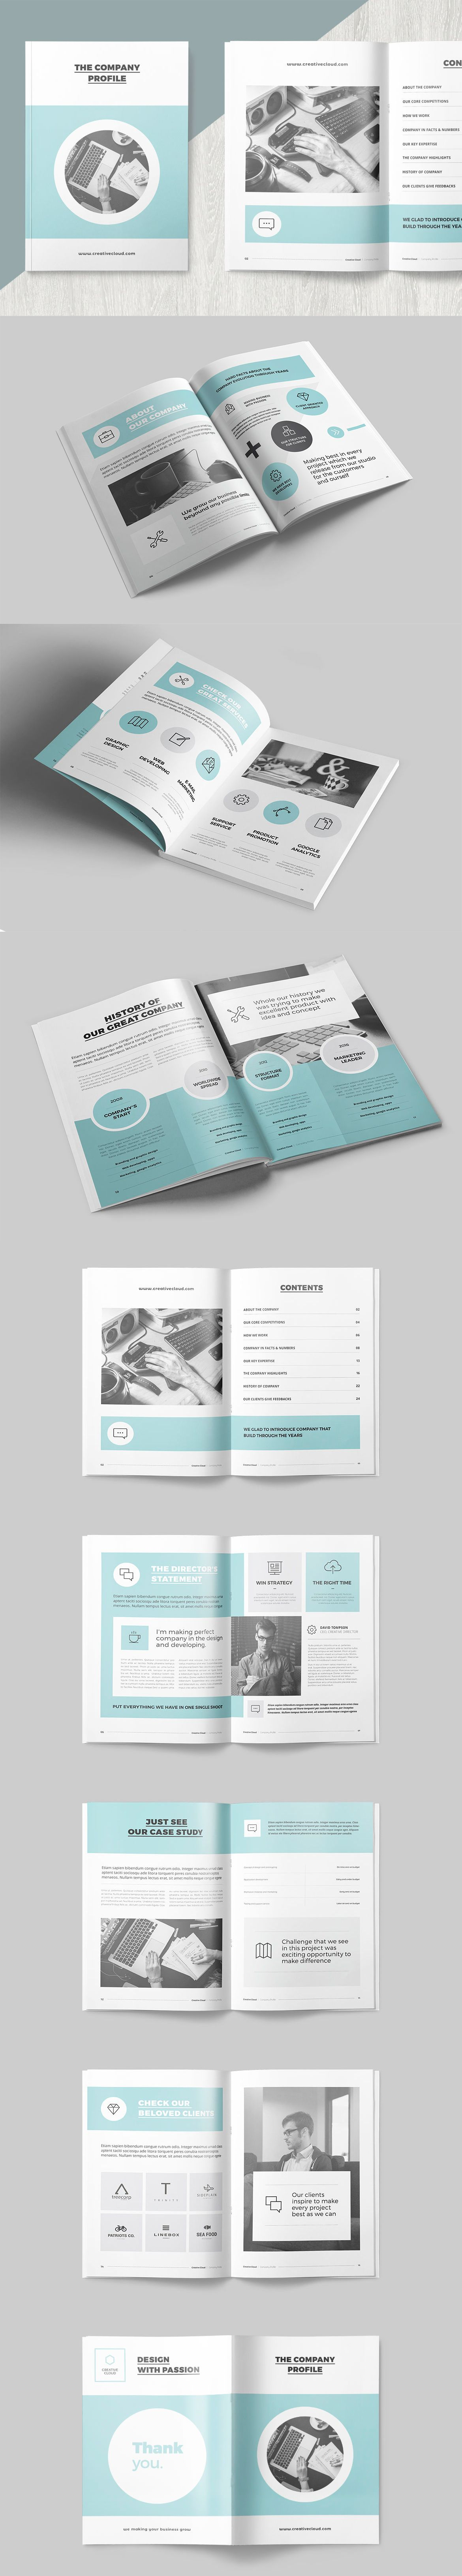 Clean and Professional Company Profile Template InDesign INDD - 16 ...